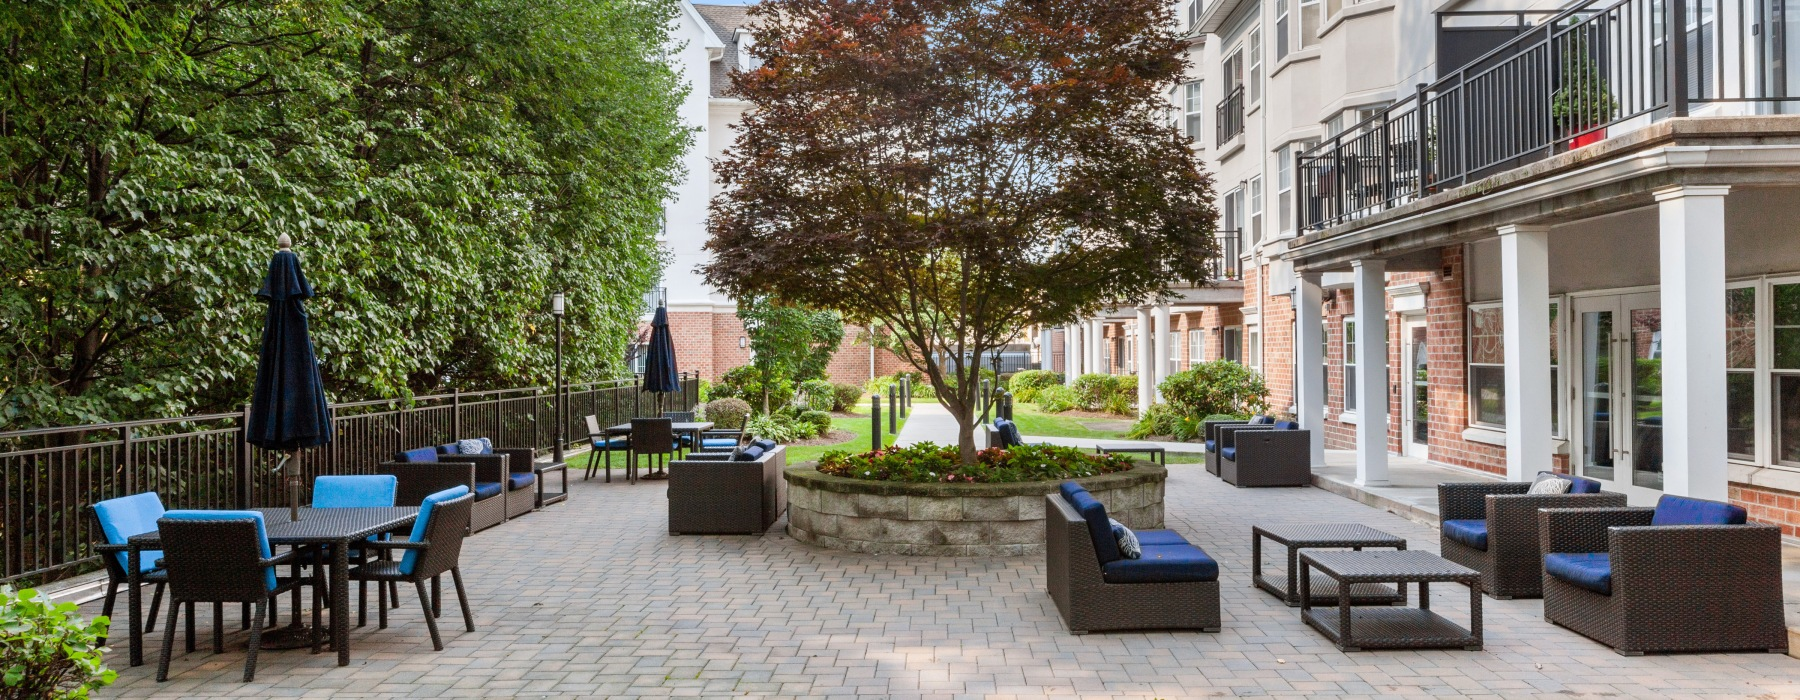 outdoor courtyard with seating area